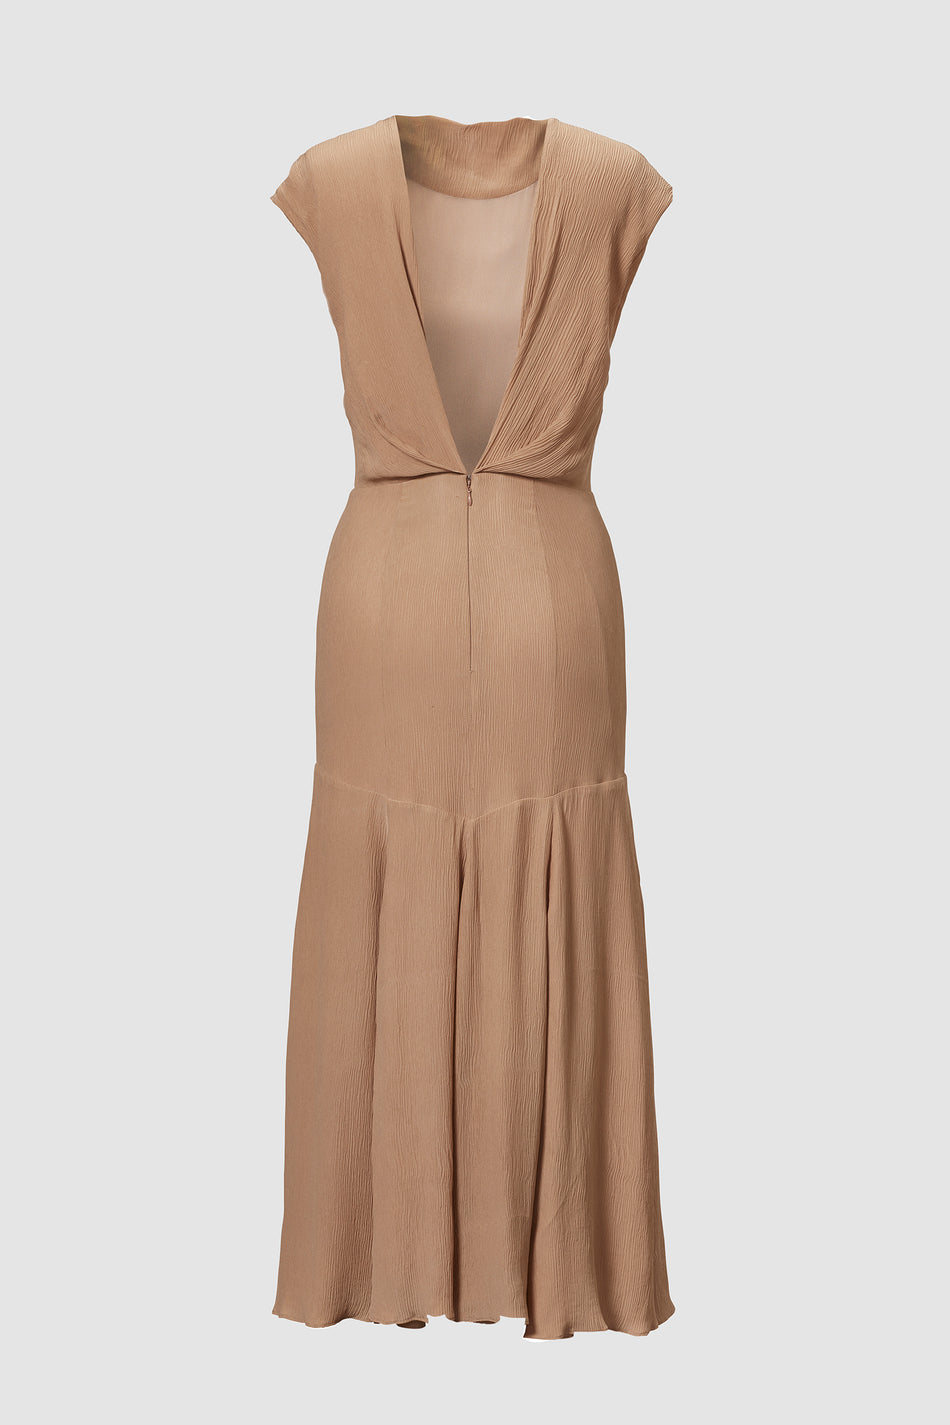 Tove Elodie Open Back Silk Dress Sand